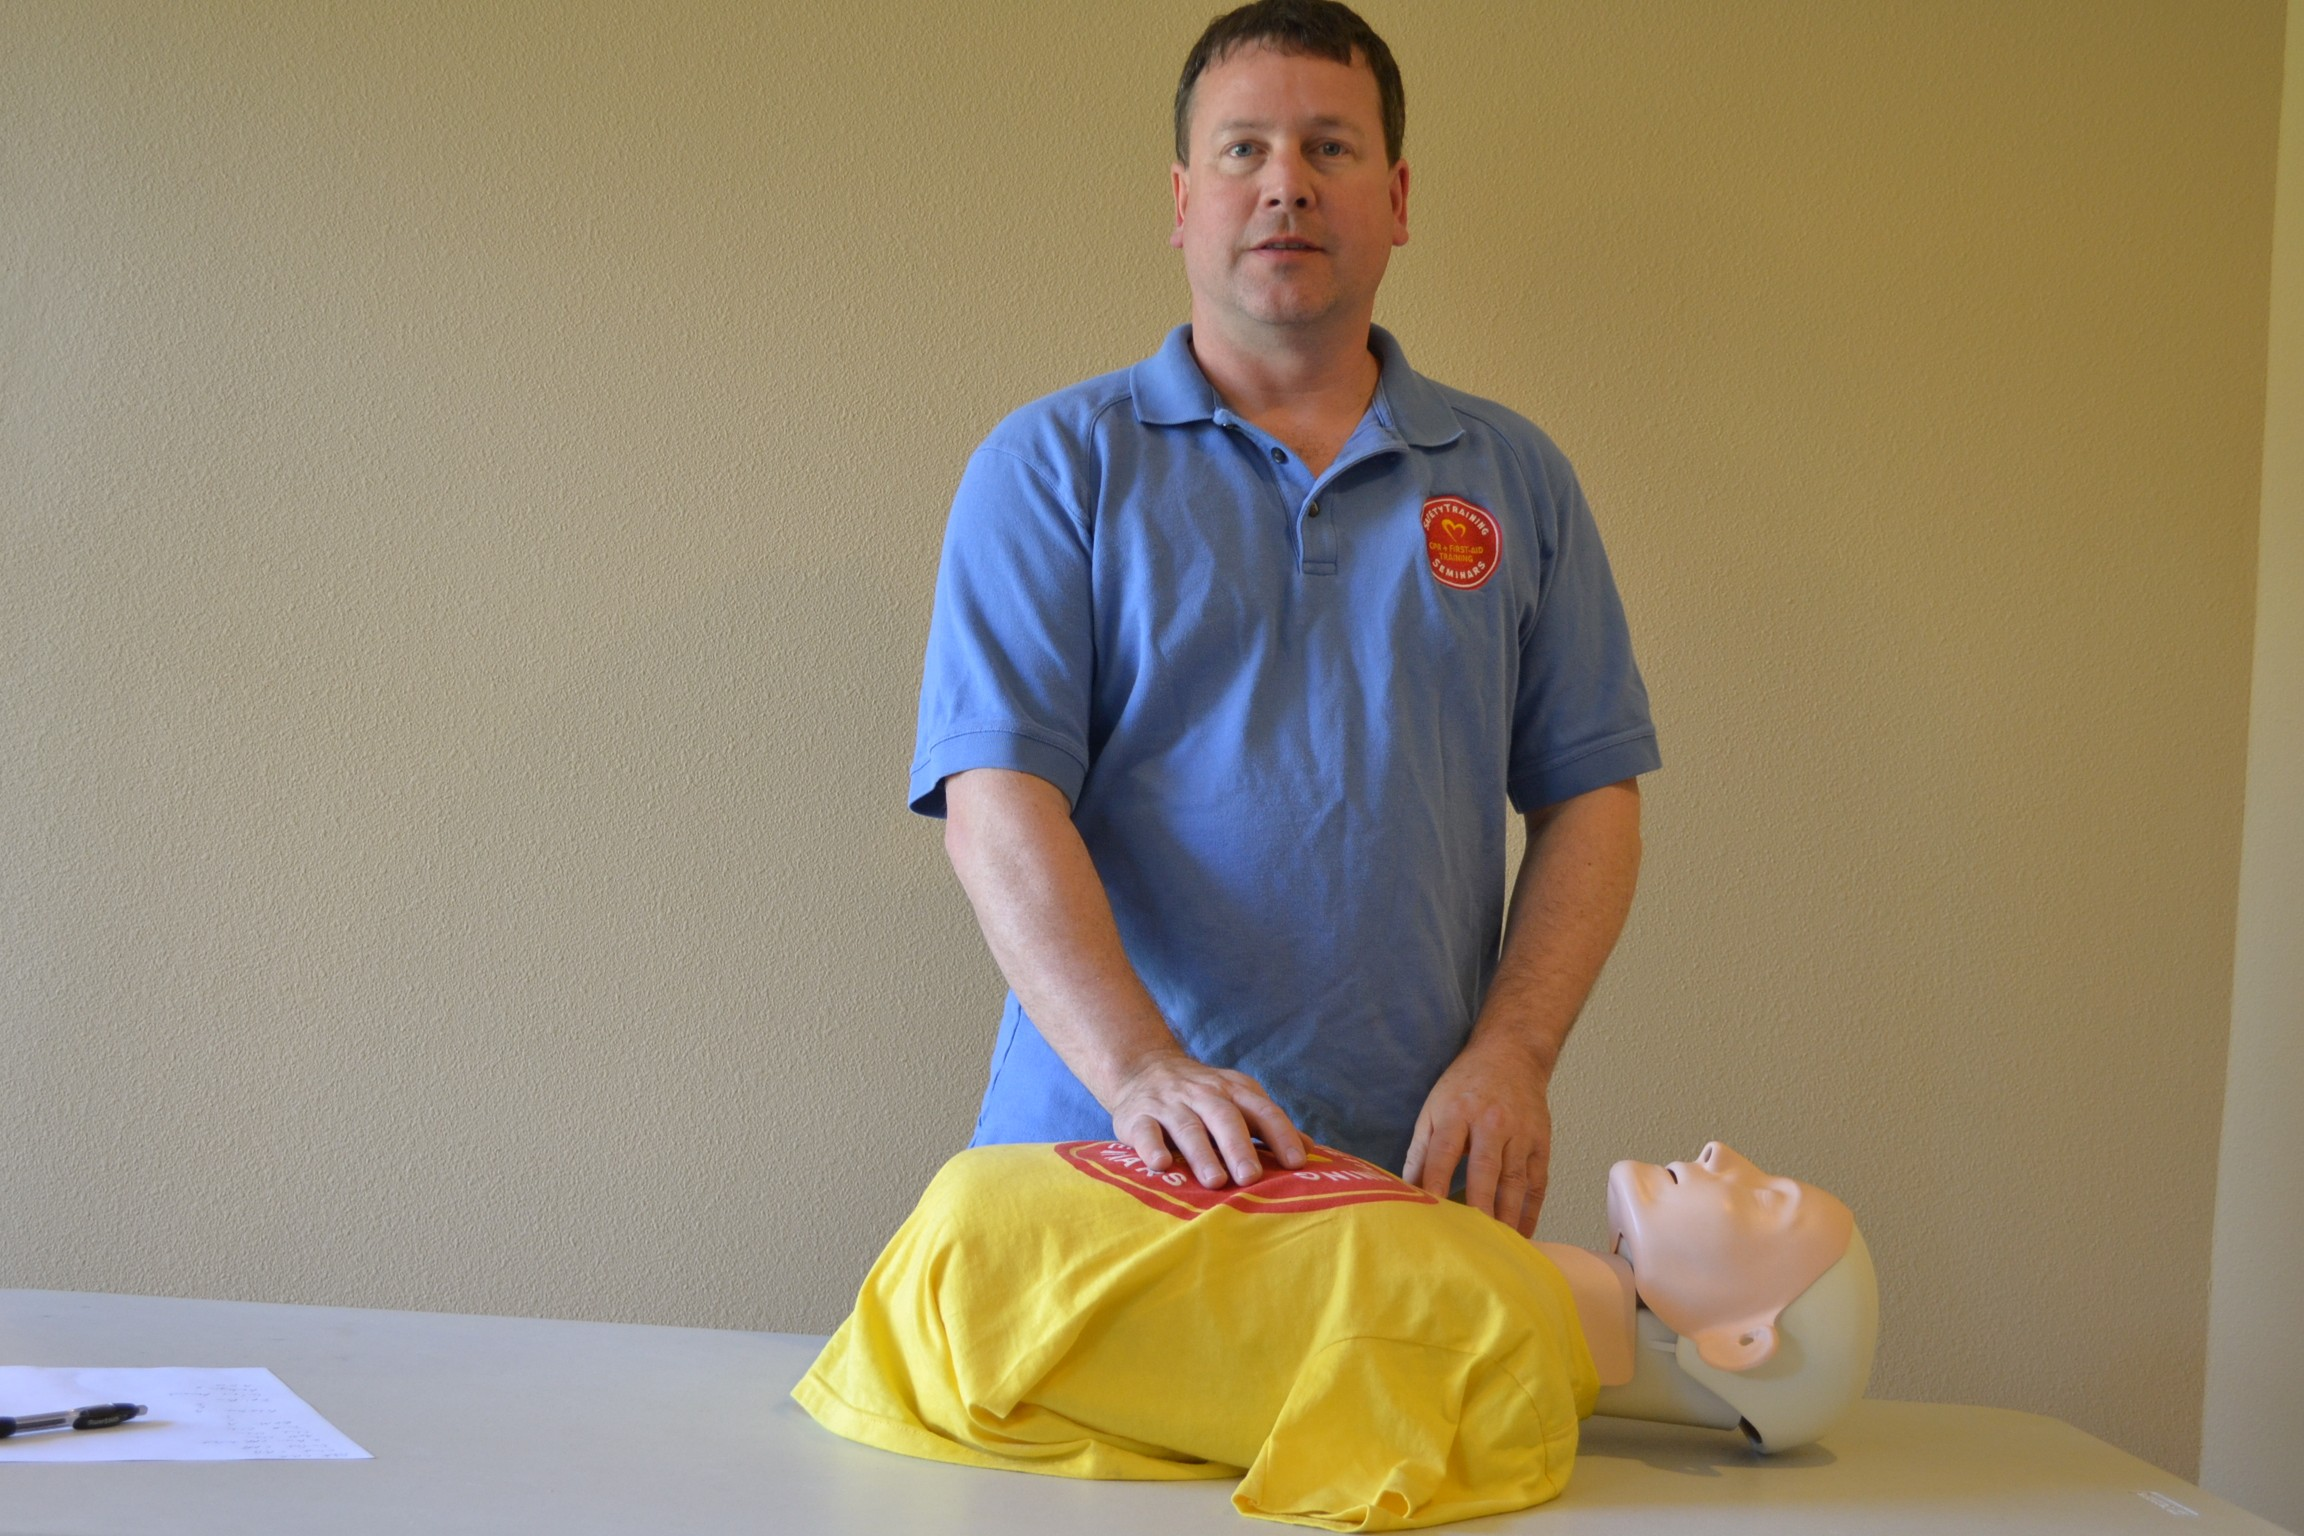 Blog on bay area american heart association cpr classes aha pals elearning class xflitez Images